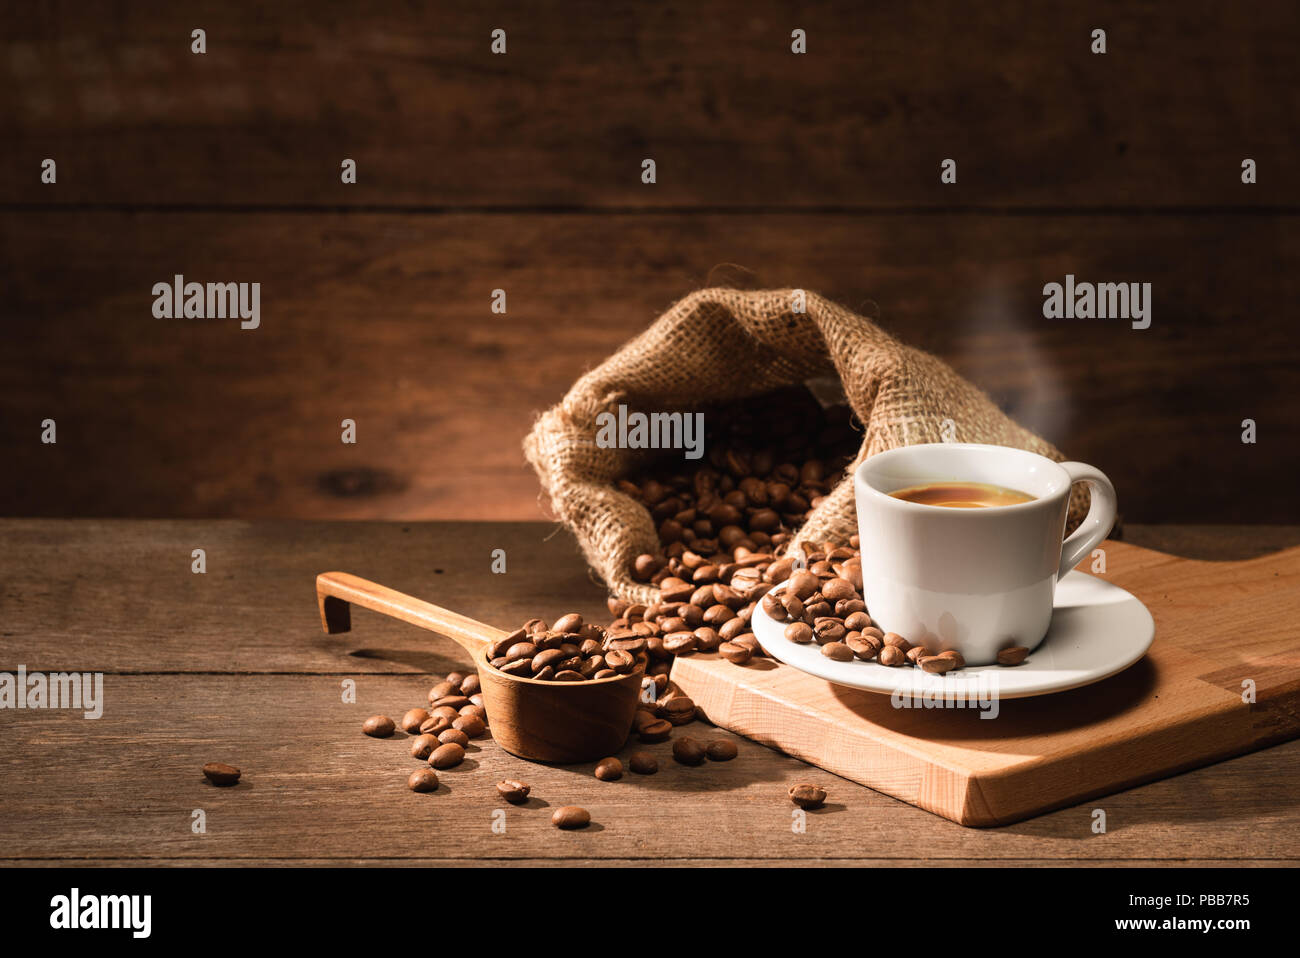 A shot of espresso with roasted coffee bean bag and wooden spoon - Stock Image